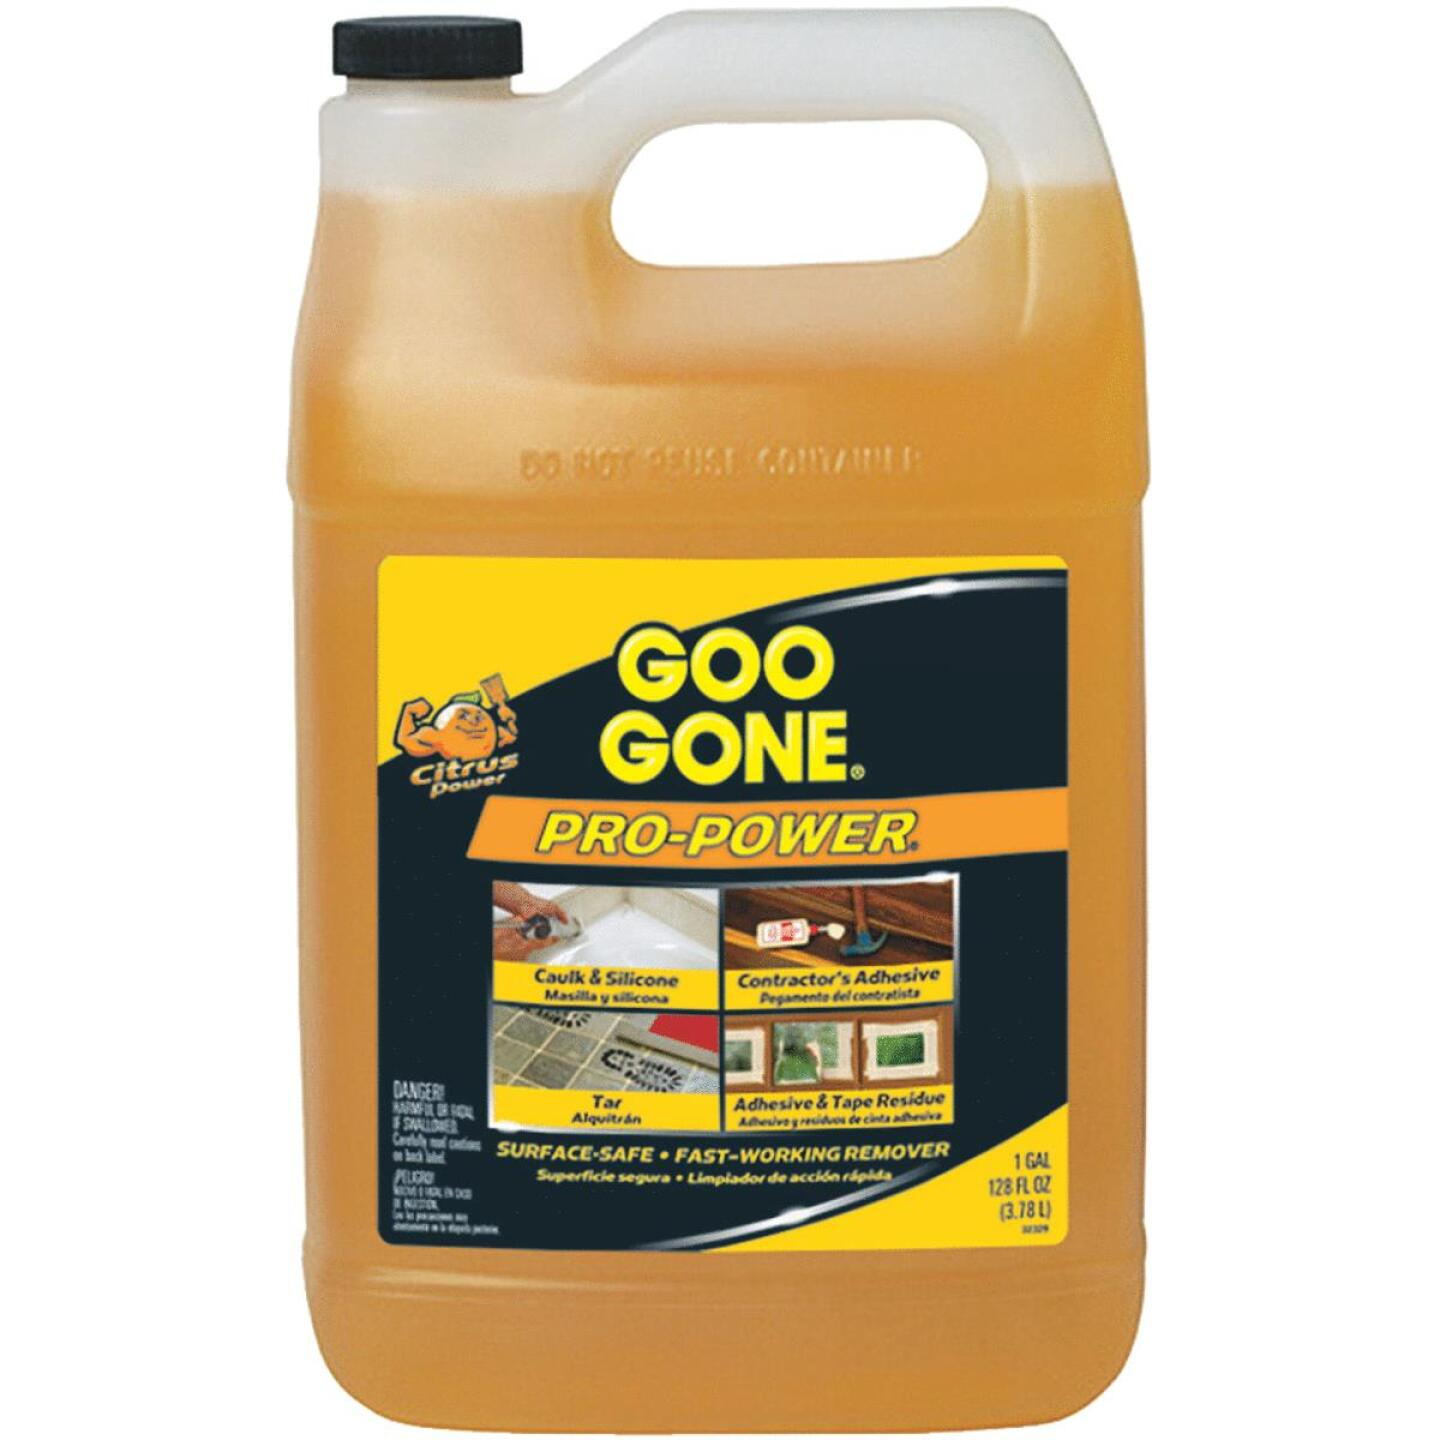 Goo Gone 1 Gal. Pro-Power Adhesive Remover Image 145